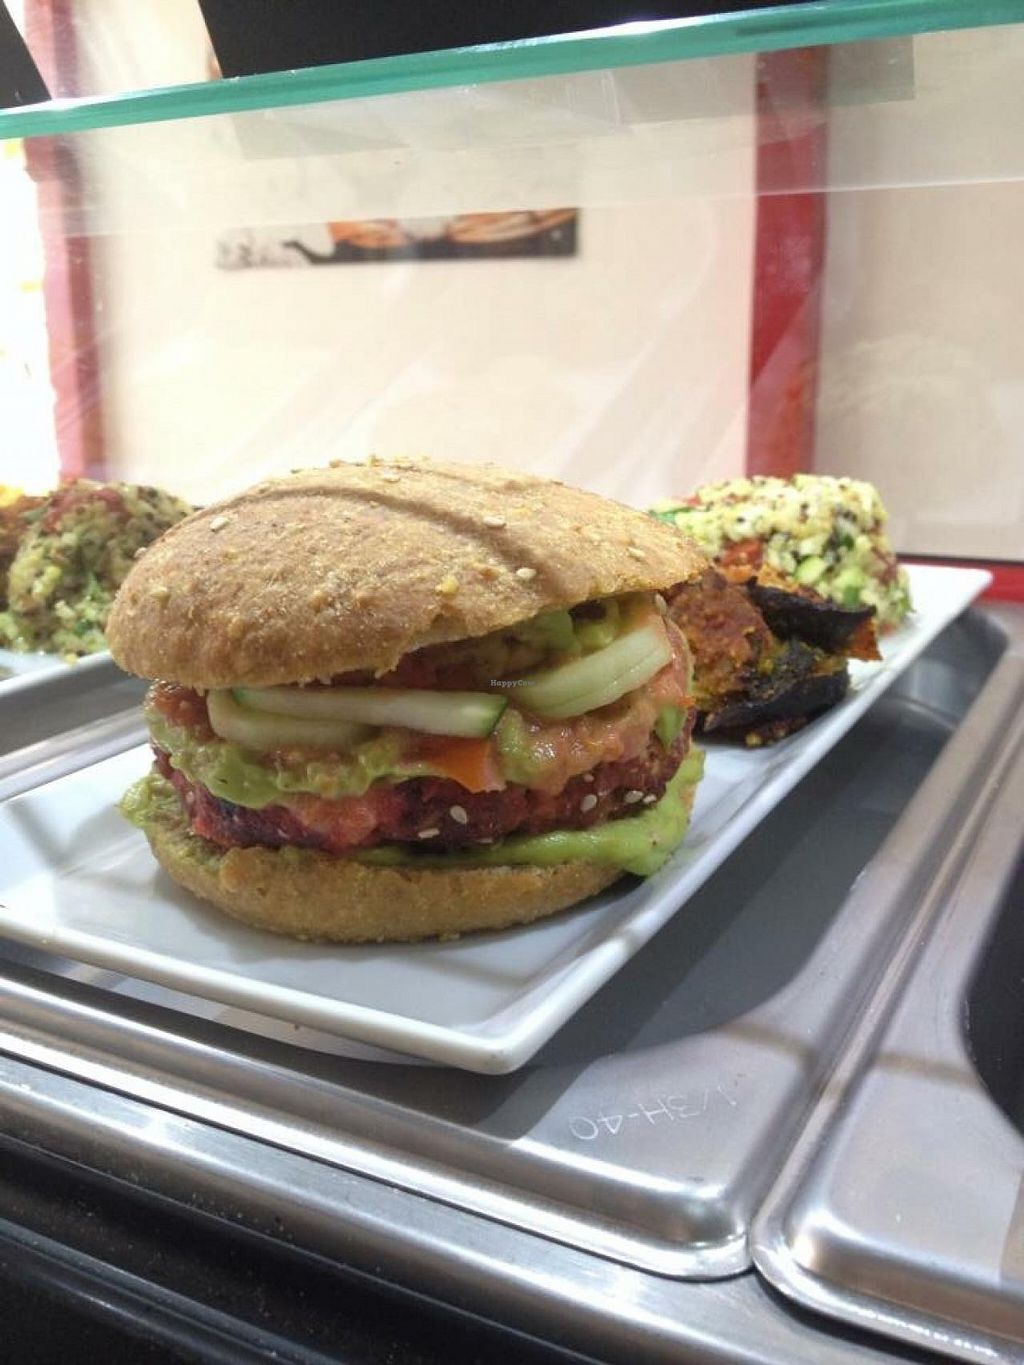 """Photo of CLOSED: BioKarma  by <a href=""""/members/profile/TodoBio"""">TodoBio</a> <br/>VegBurger with home-made organic Bread  <br/> June 11, 2015  - <a href='/contact/abuse/image/59187/105480'>Report</a>"""